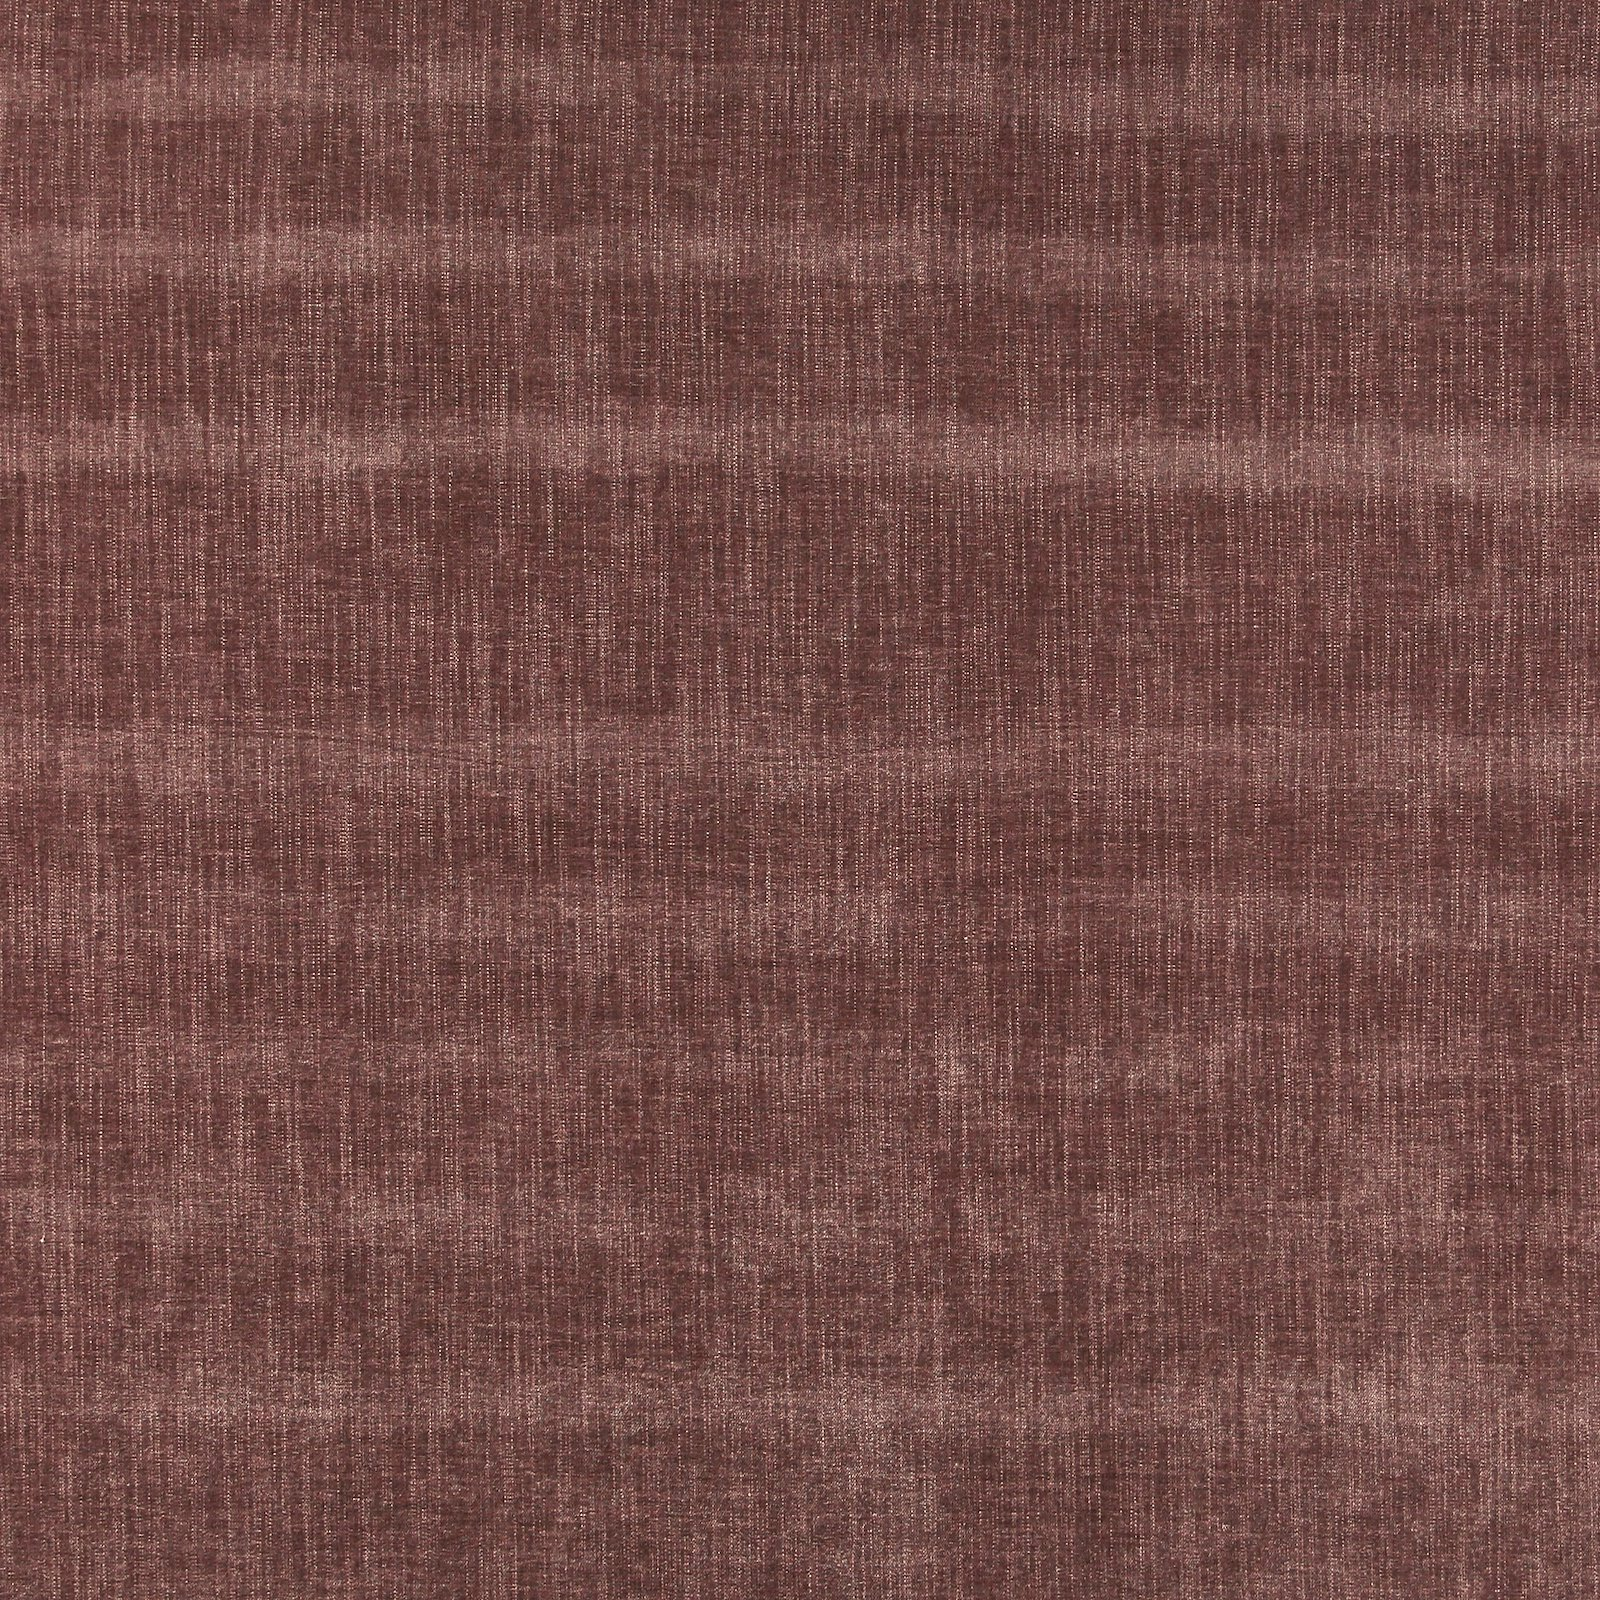 Upholstery chenille structure chestnut 824159_pack_solid